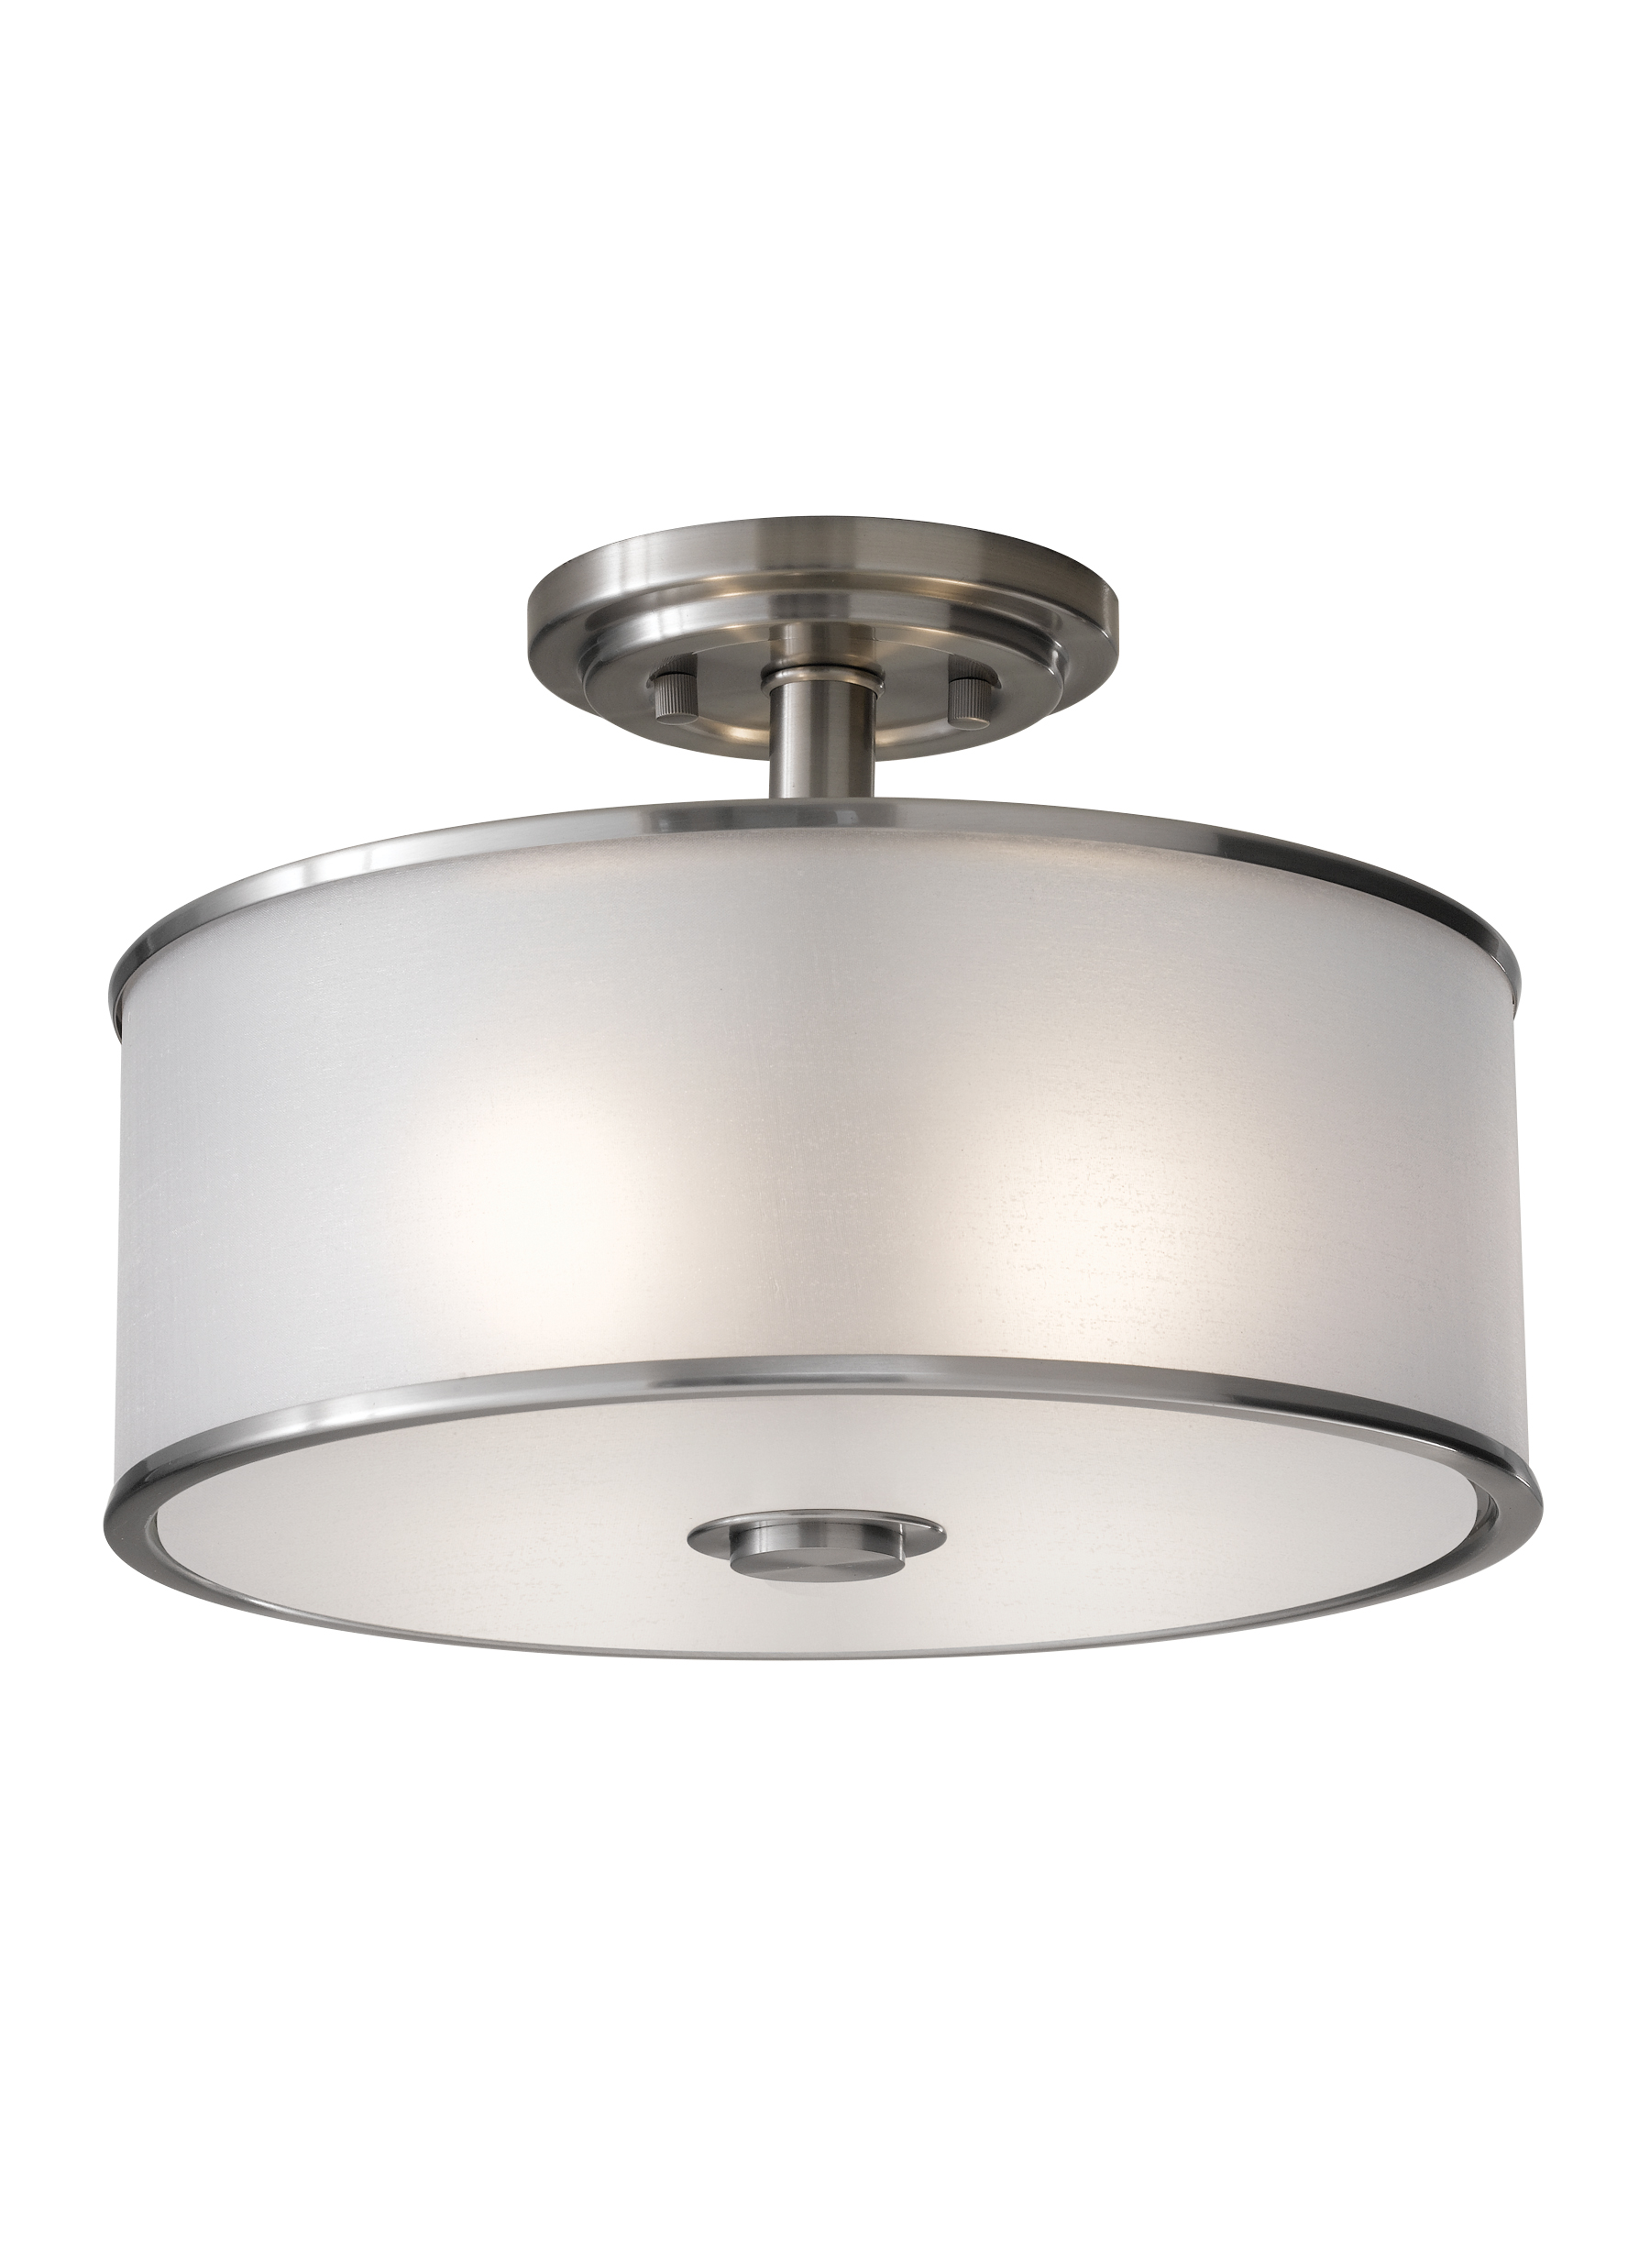 SF251BS 2 Light Indoor Semi Flush Mount Brushed Steel